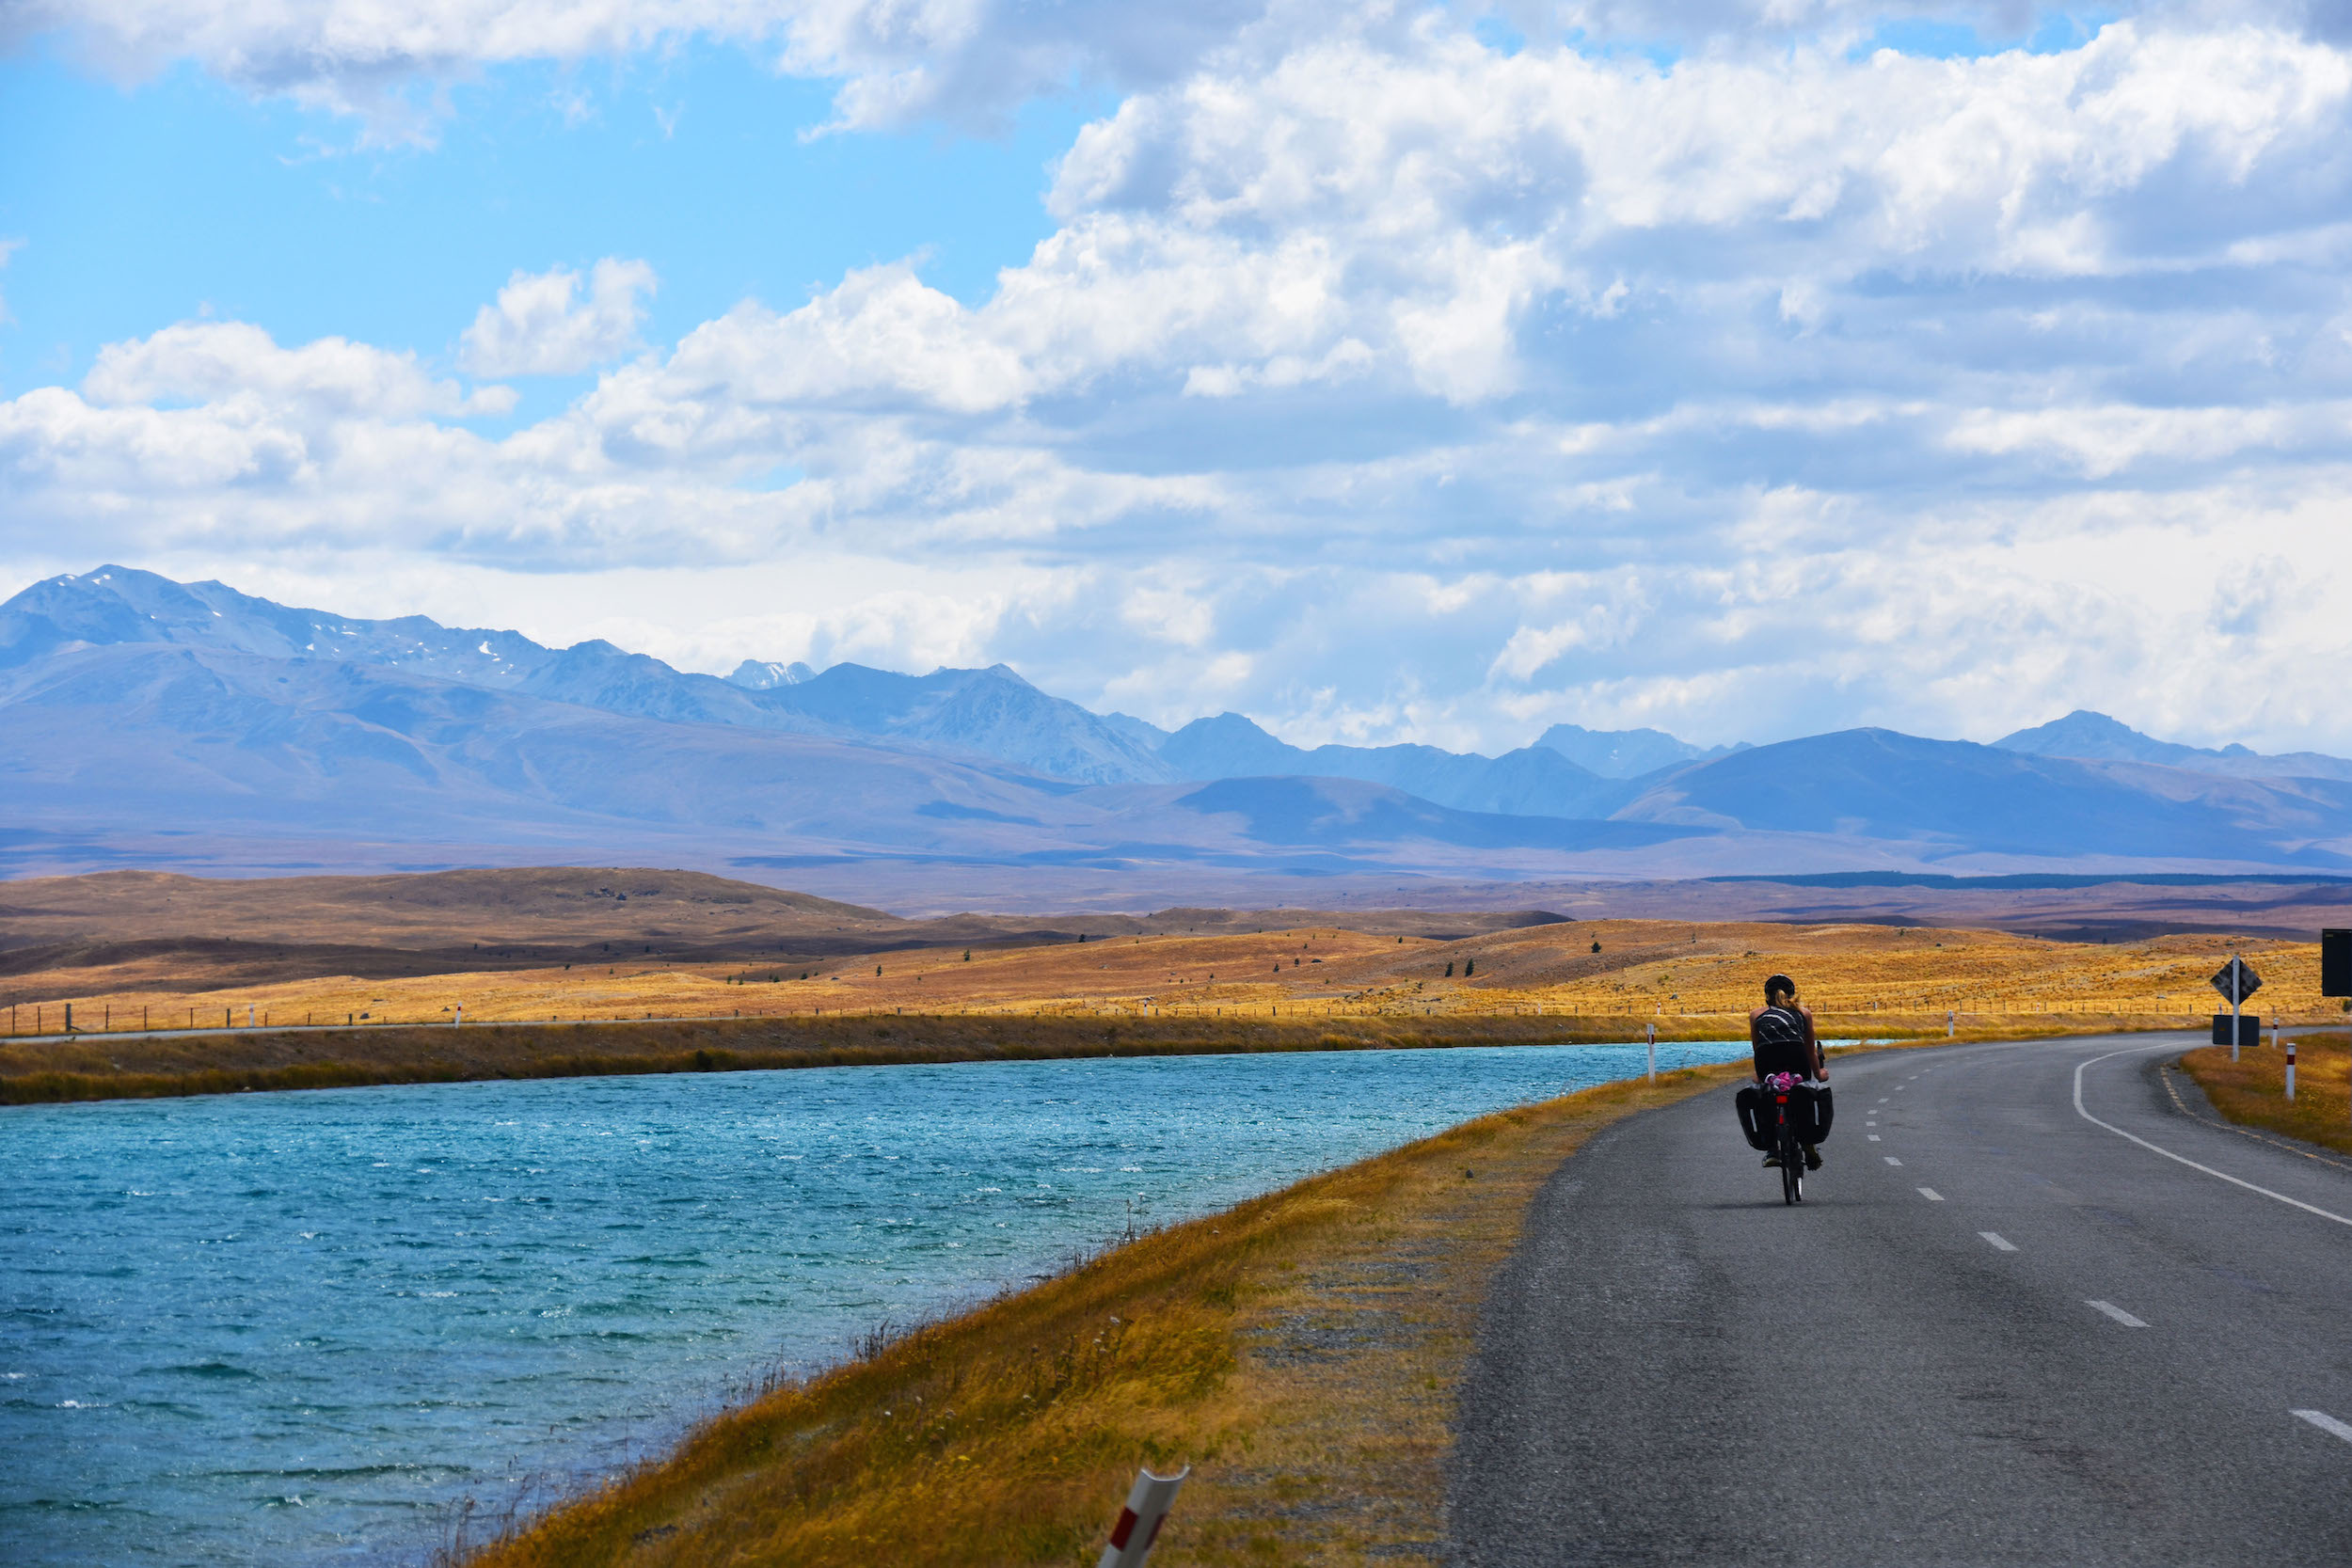 Cycling the Tekapo Canal Road alongside Lake Pukaki.